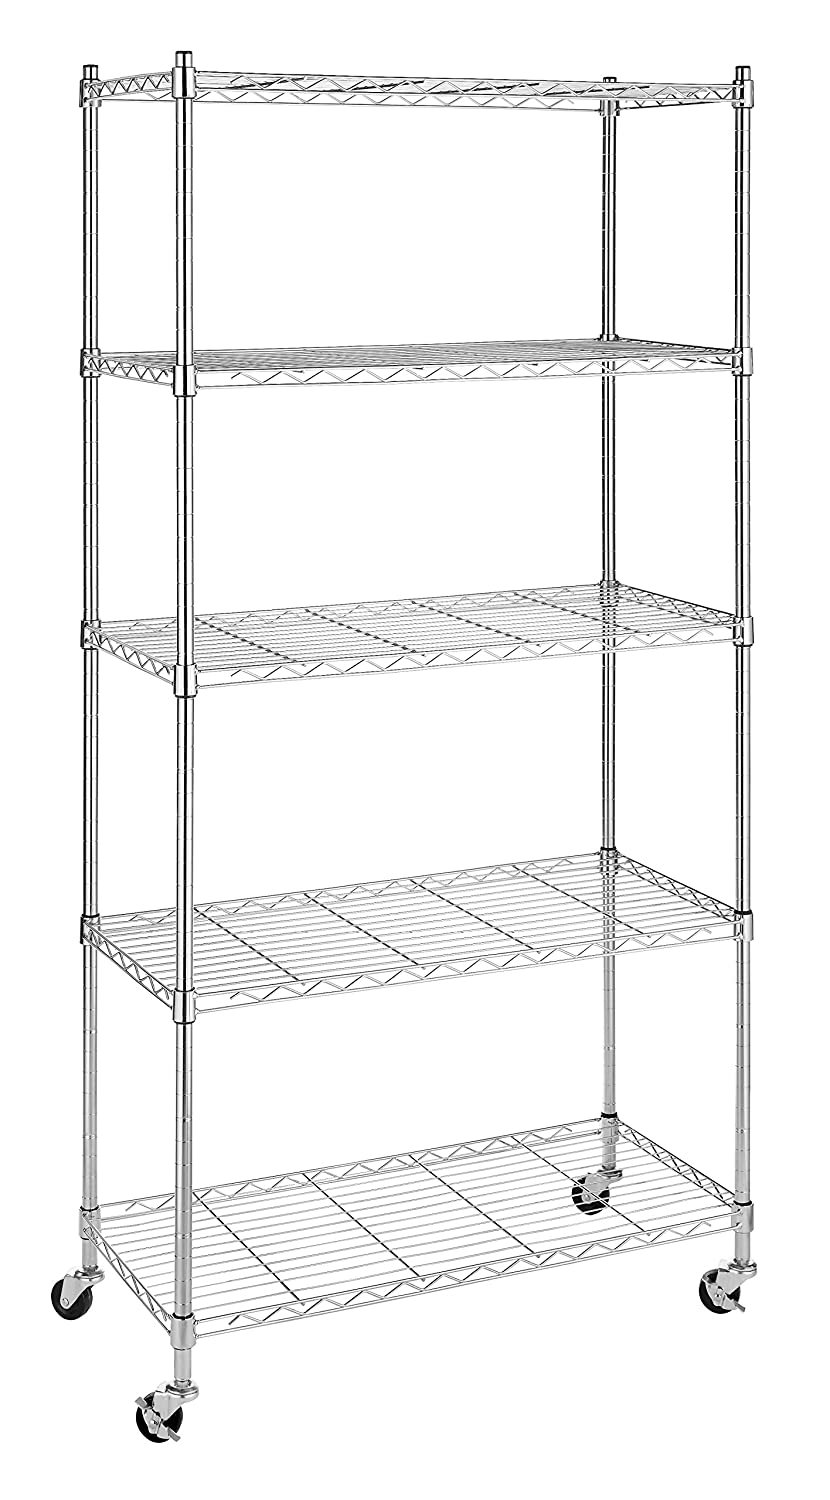 Whitmor Supreme 5 Tier Cart - Rolling Utility Organizer - Chrome